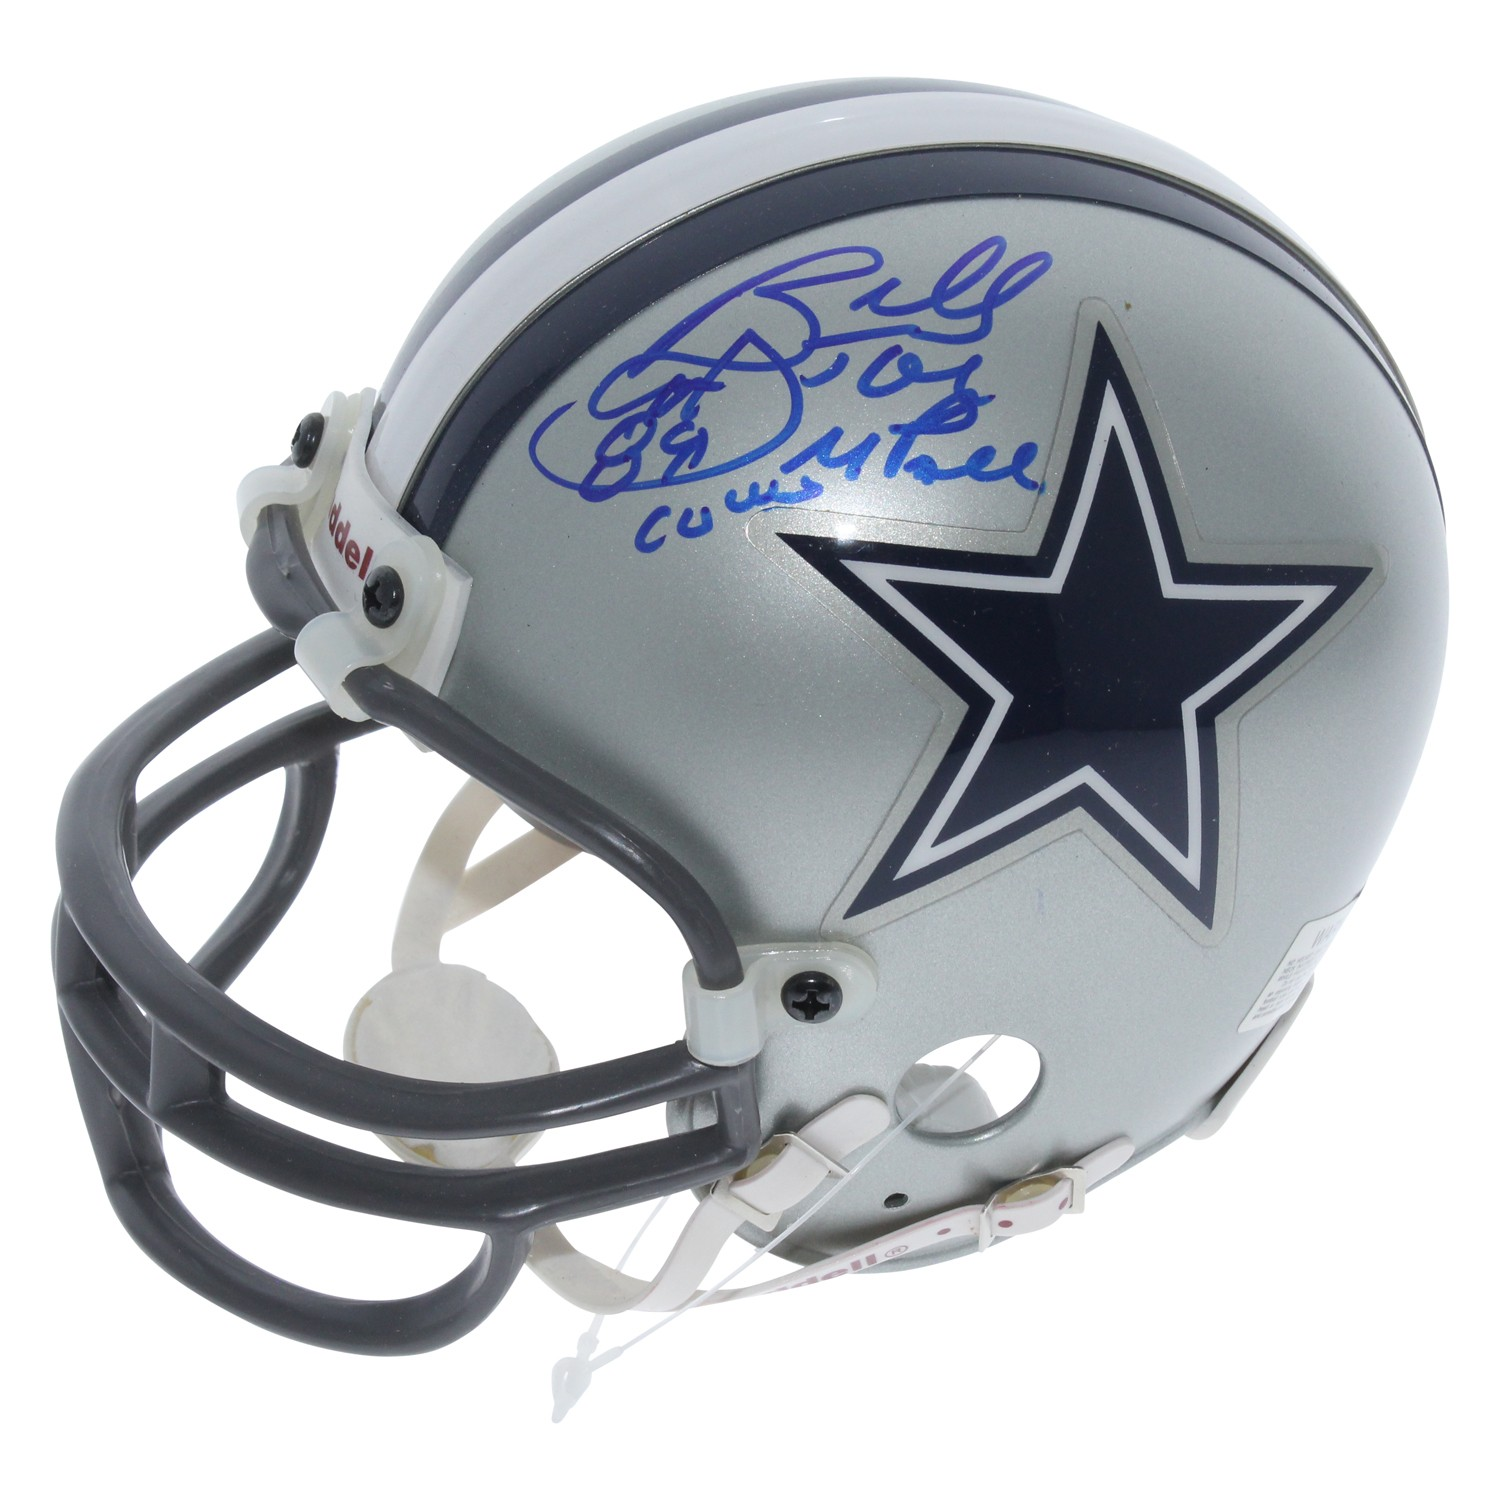 29bfb2a55 Billy Joe Dupree Dallas Cowboys Autographed Signed Riddell Mini Helmet - Opposite  Side Auto - Certified Authentic